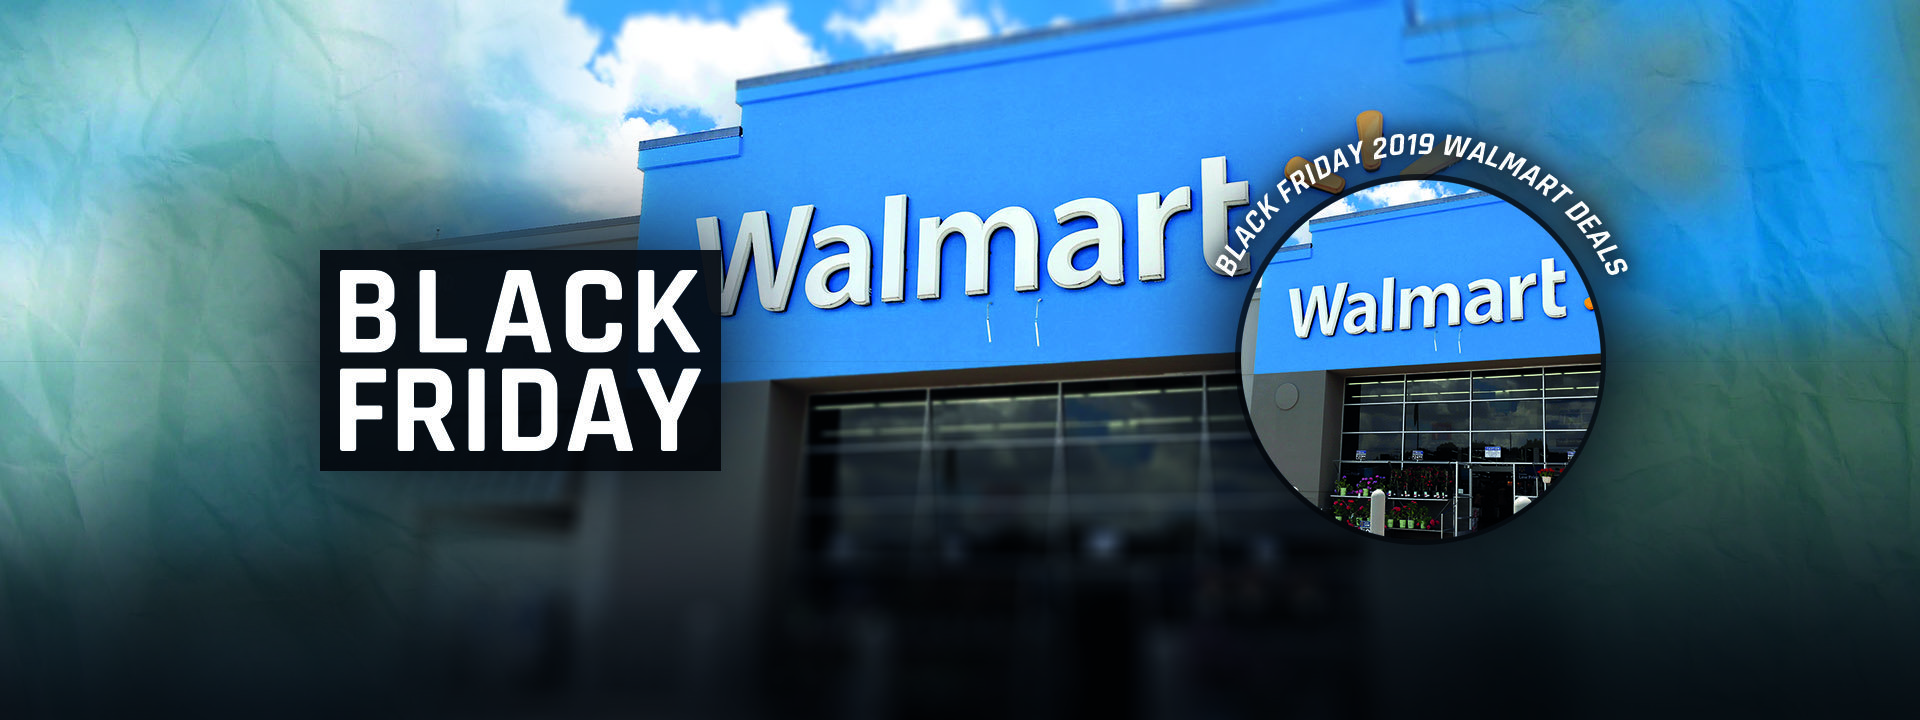 Black Friday 2019 Walmart Deals Console Bundles Games